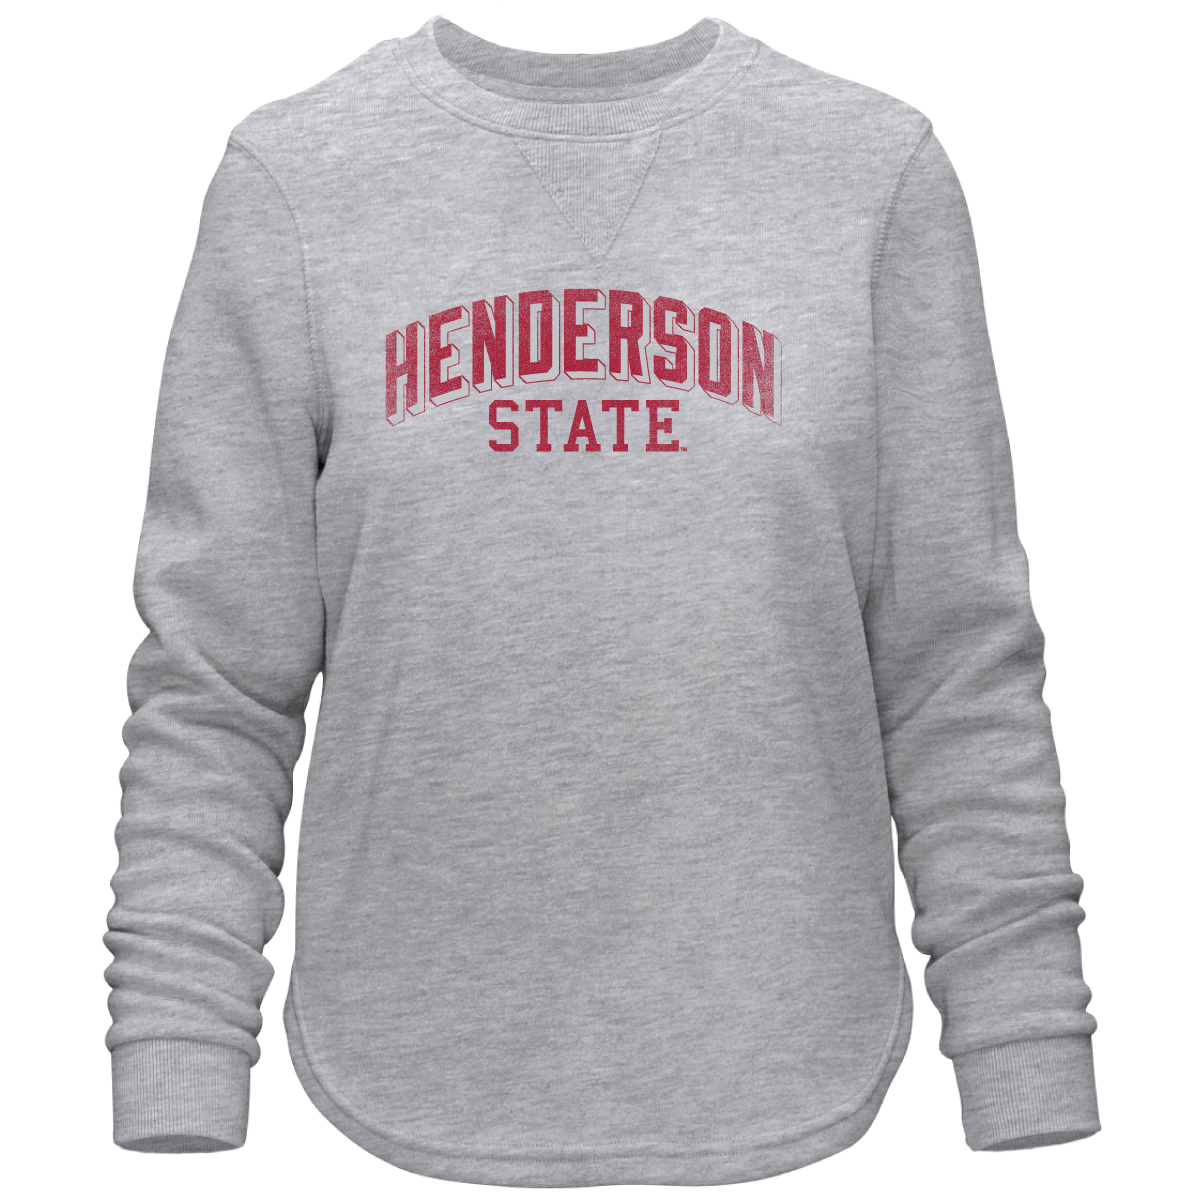 Henderson State Comfy Crew